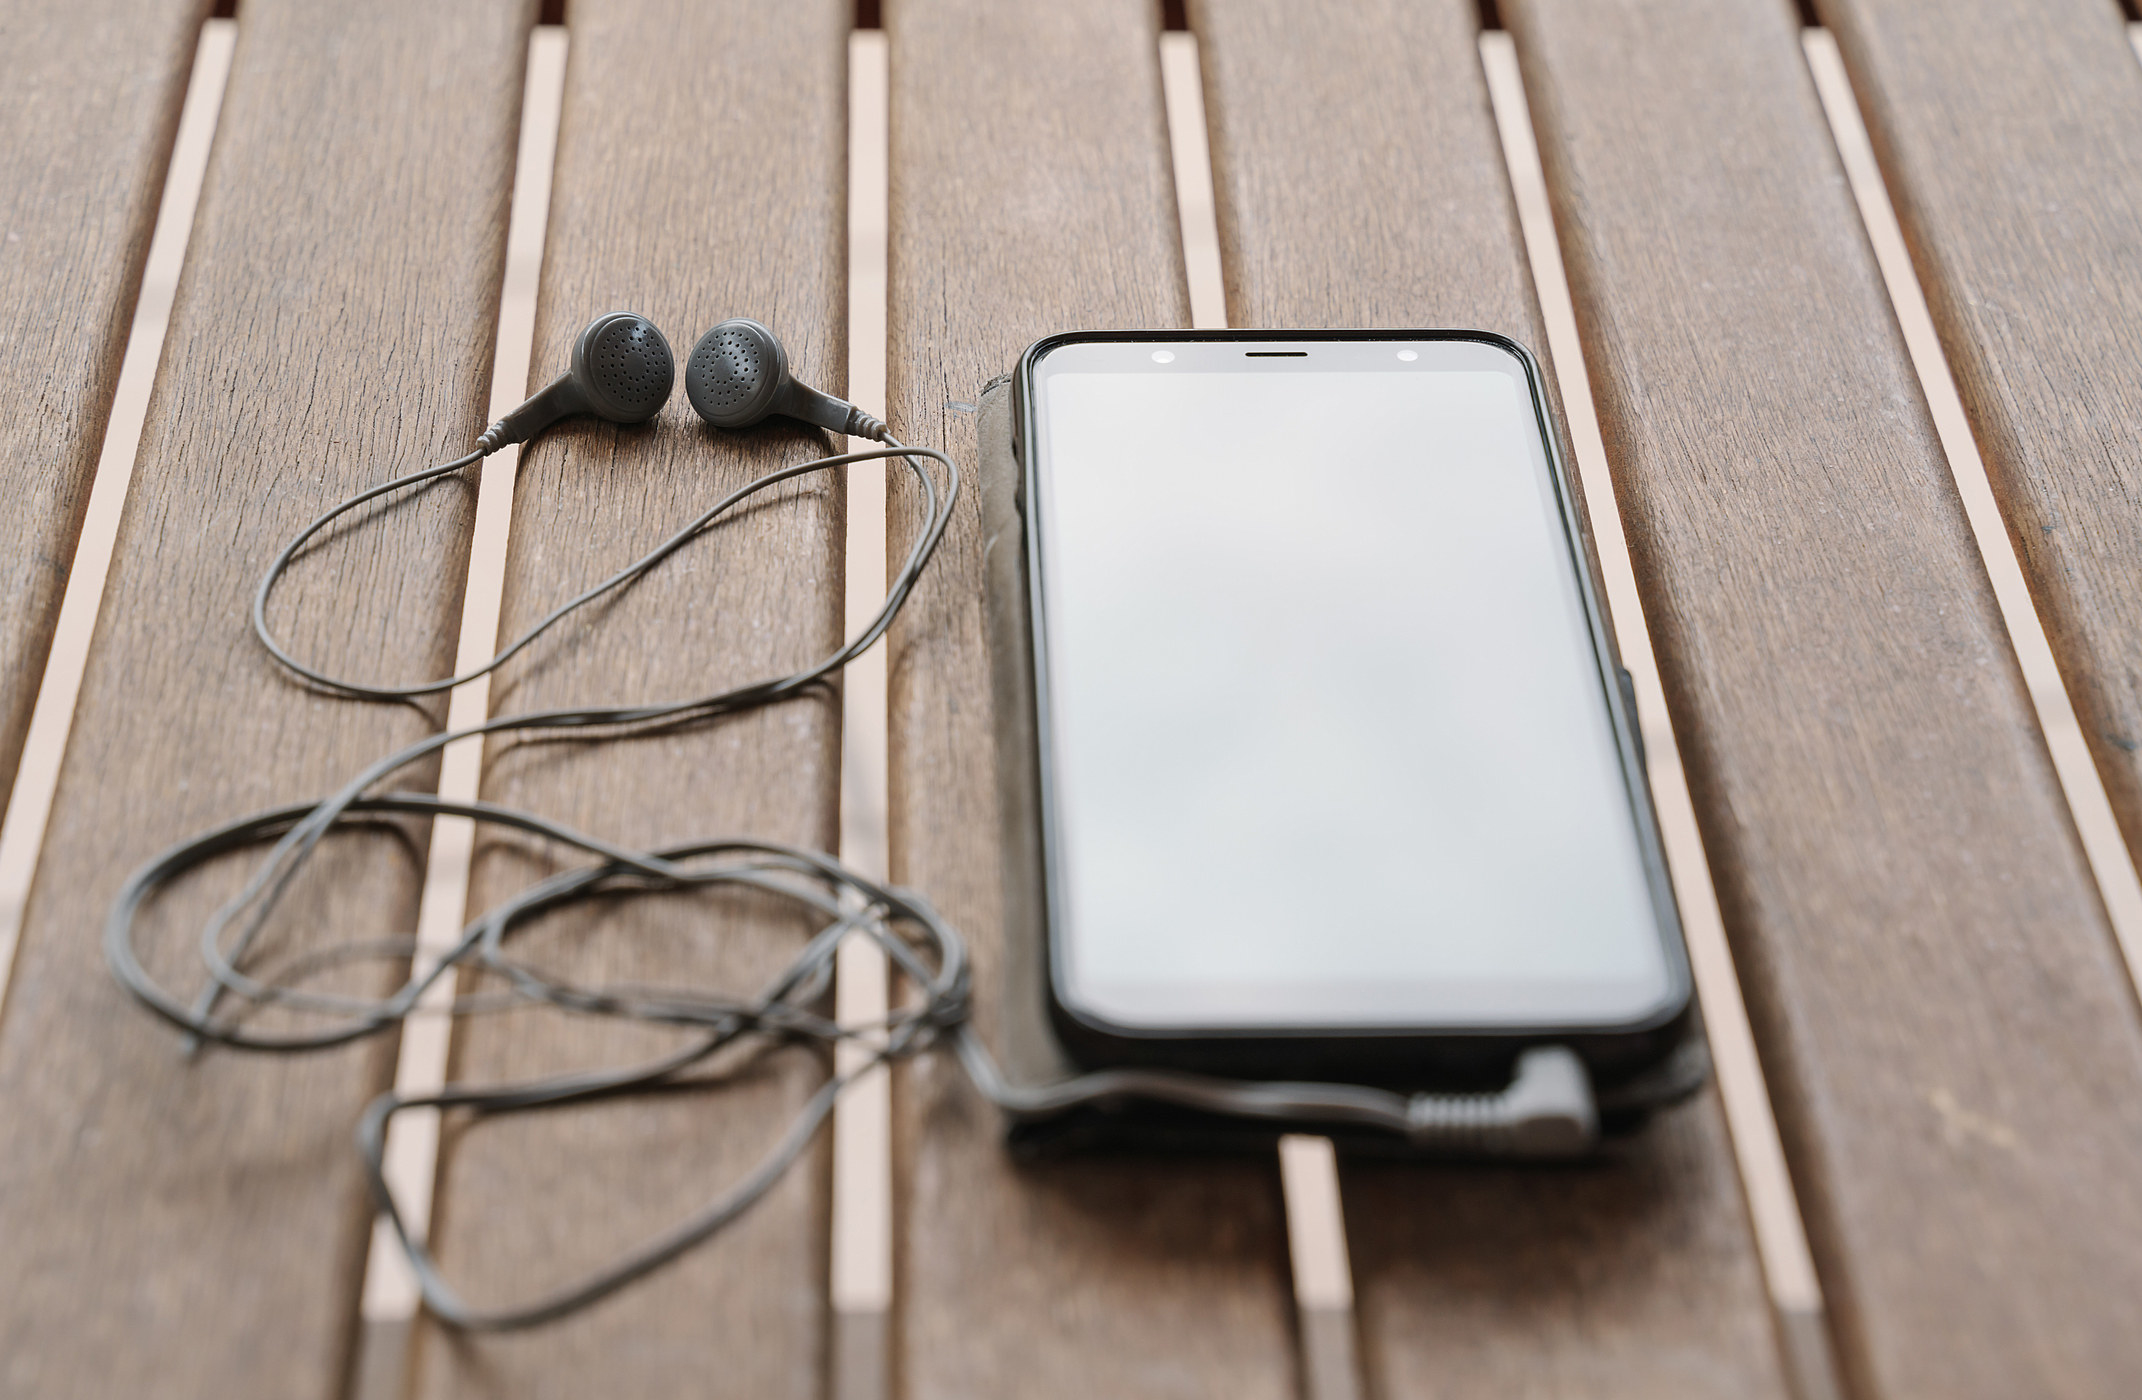 A phone with earbuds plugged in